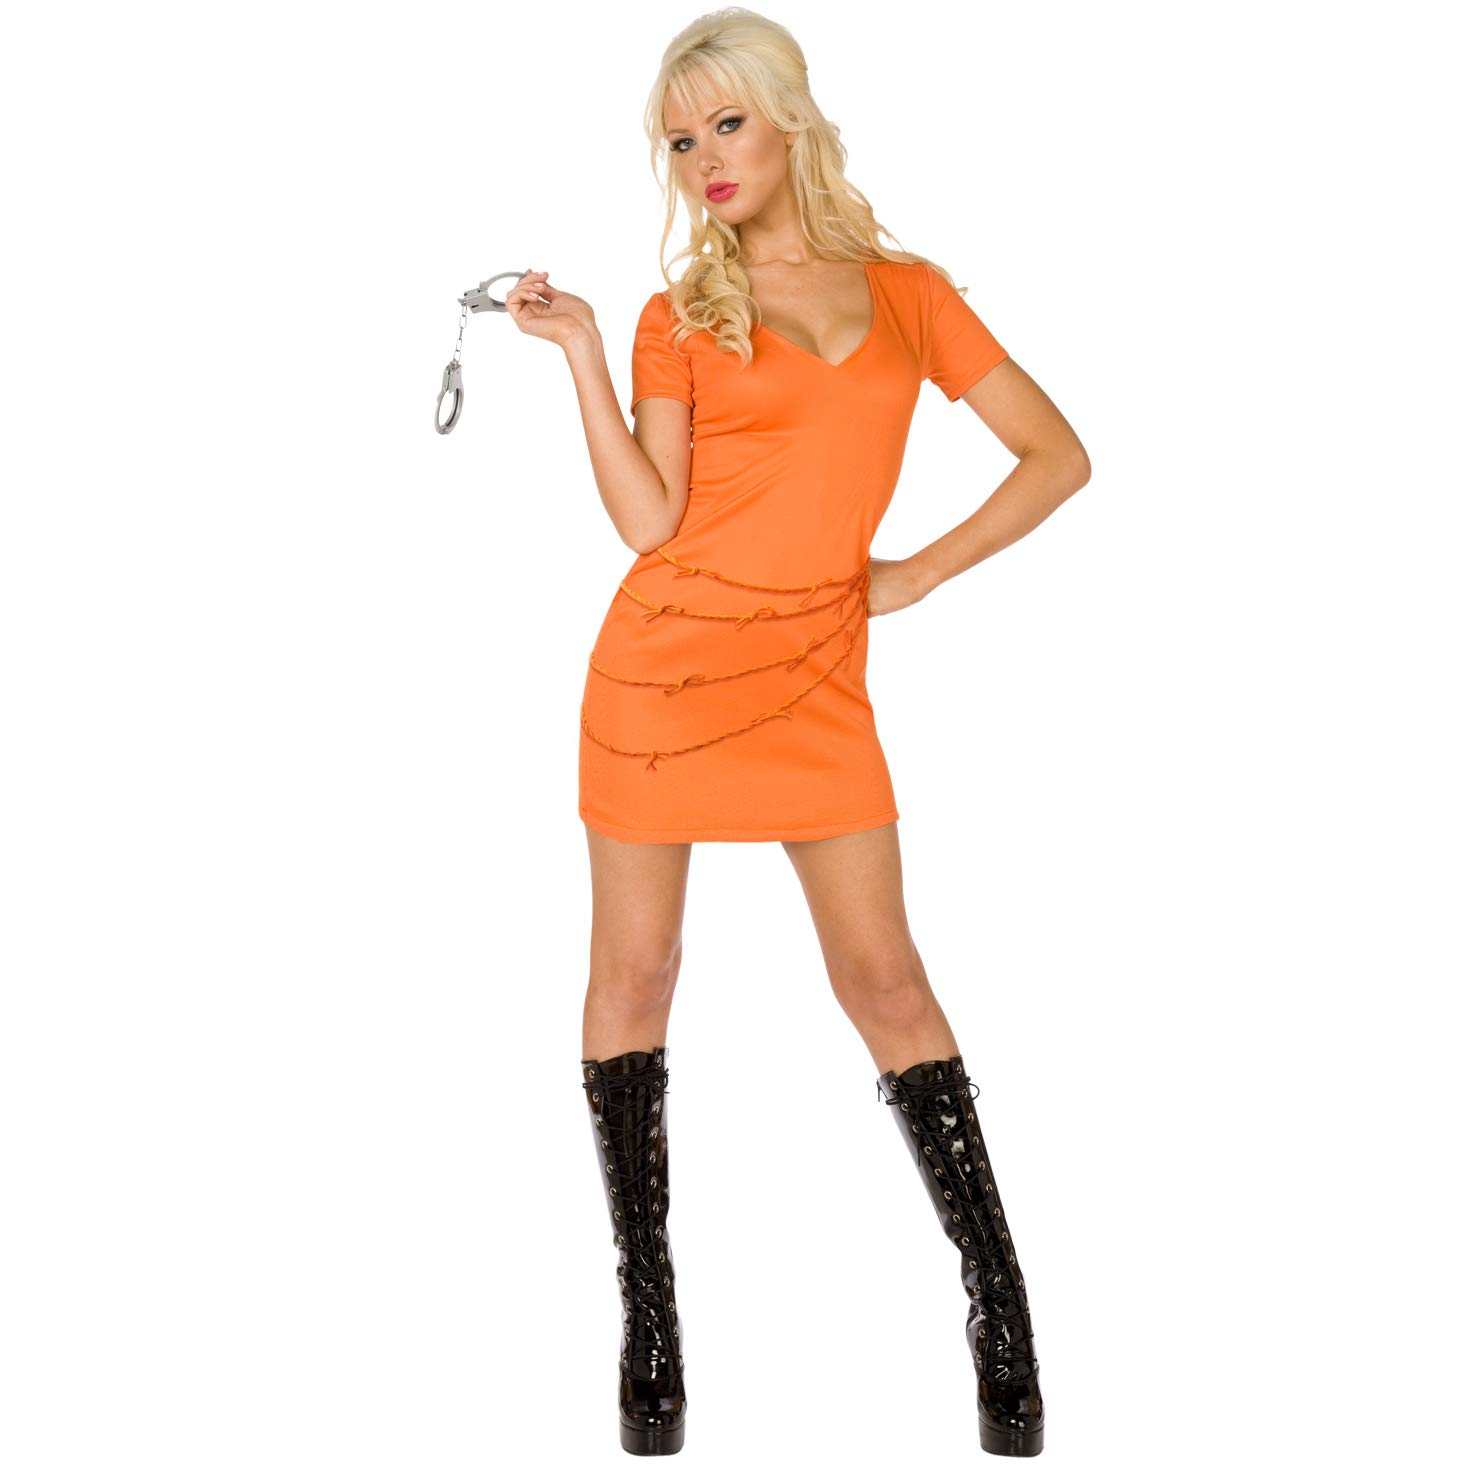 Amazon.com: Womens prisionero traje de color naranja tamaño ...